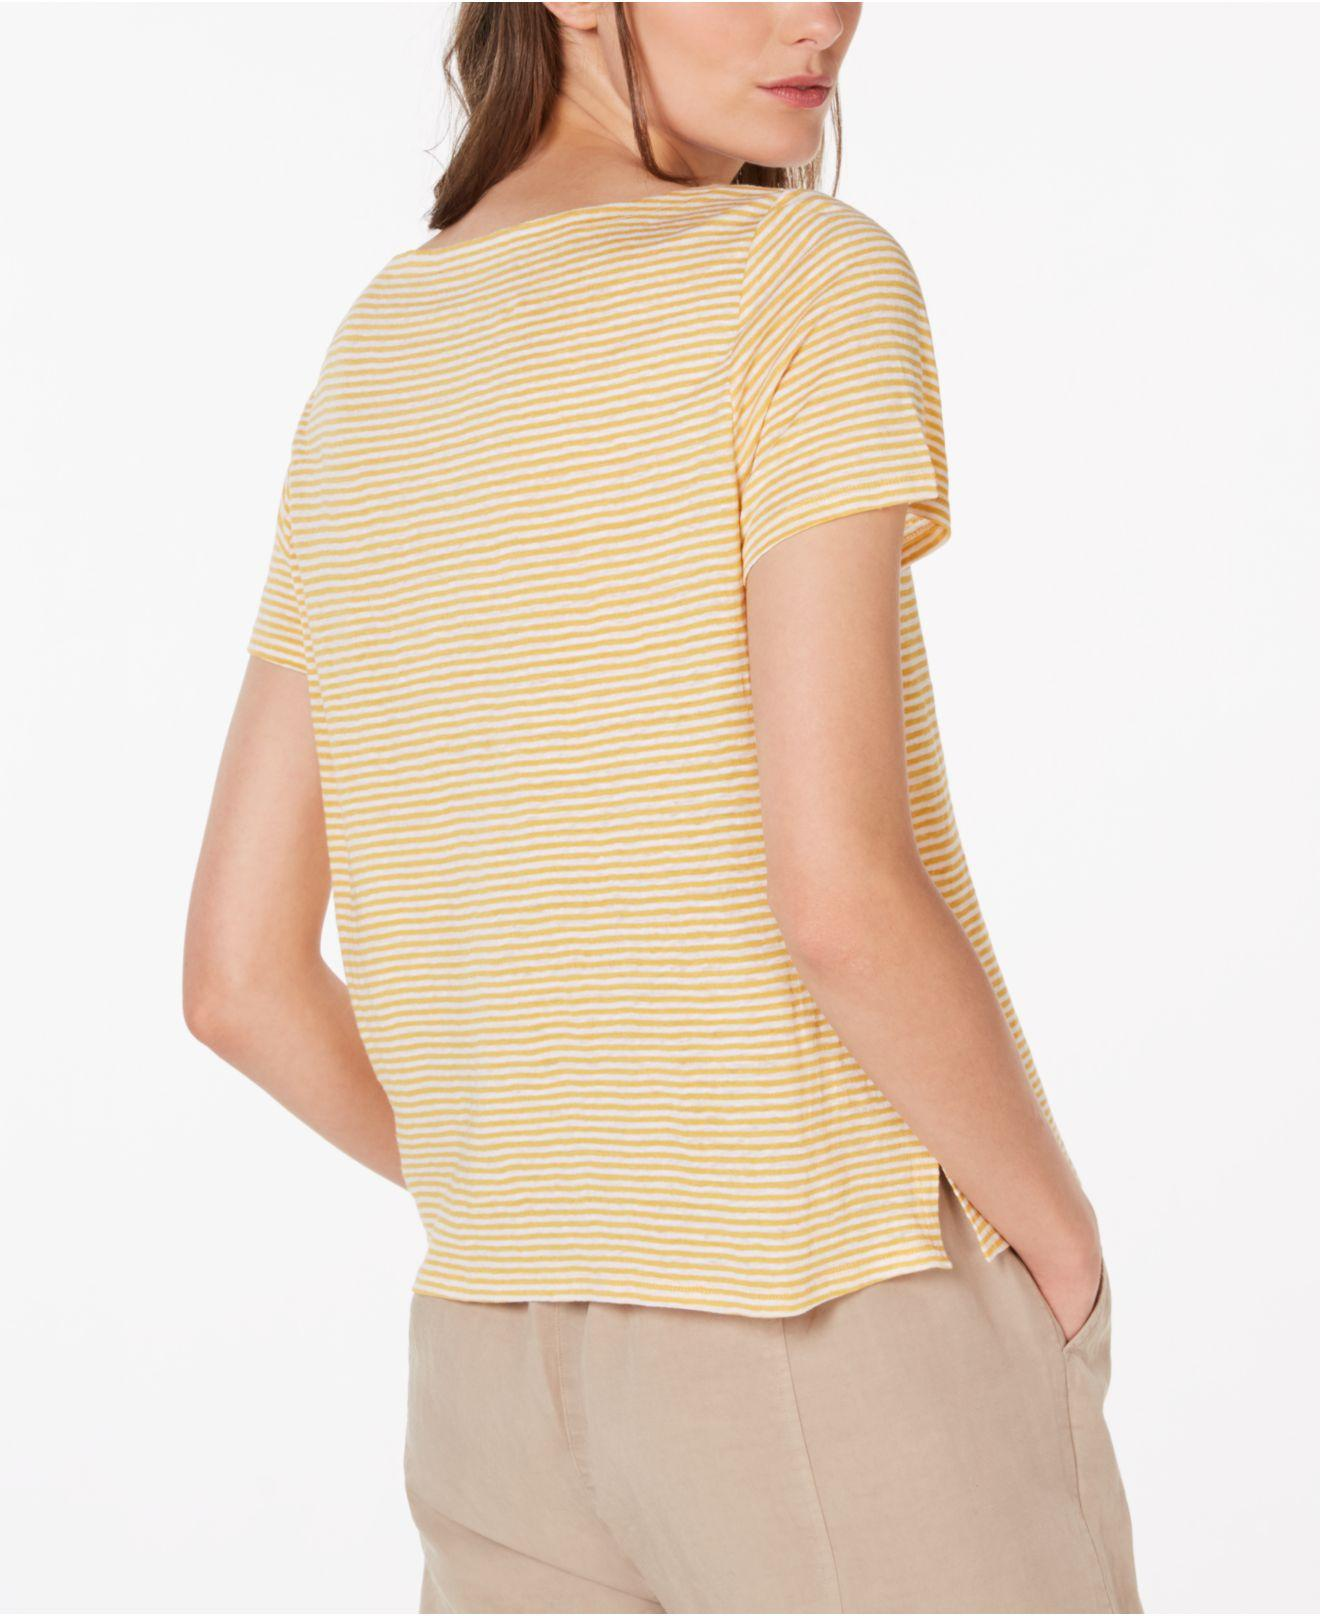 4198c2444a0 Lyst - Eileen Fisher Square-neck Short-sleeve Striped Jersey Linen Tee -  Save 11%